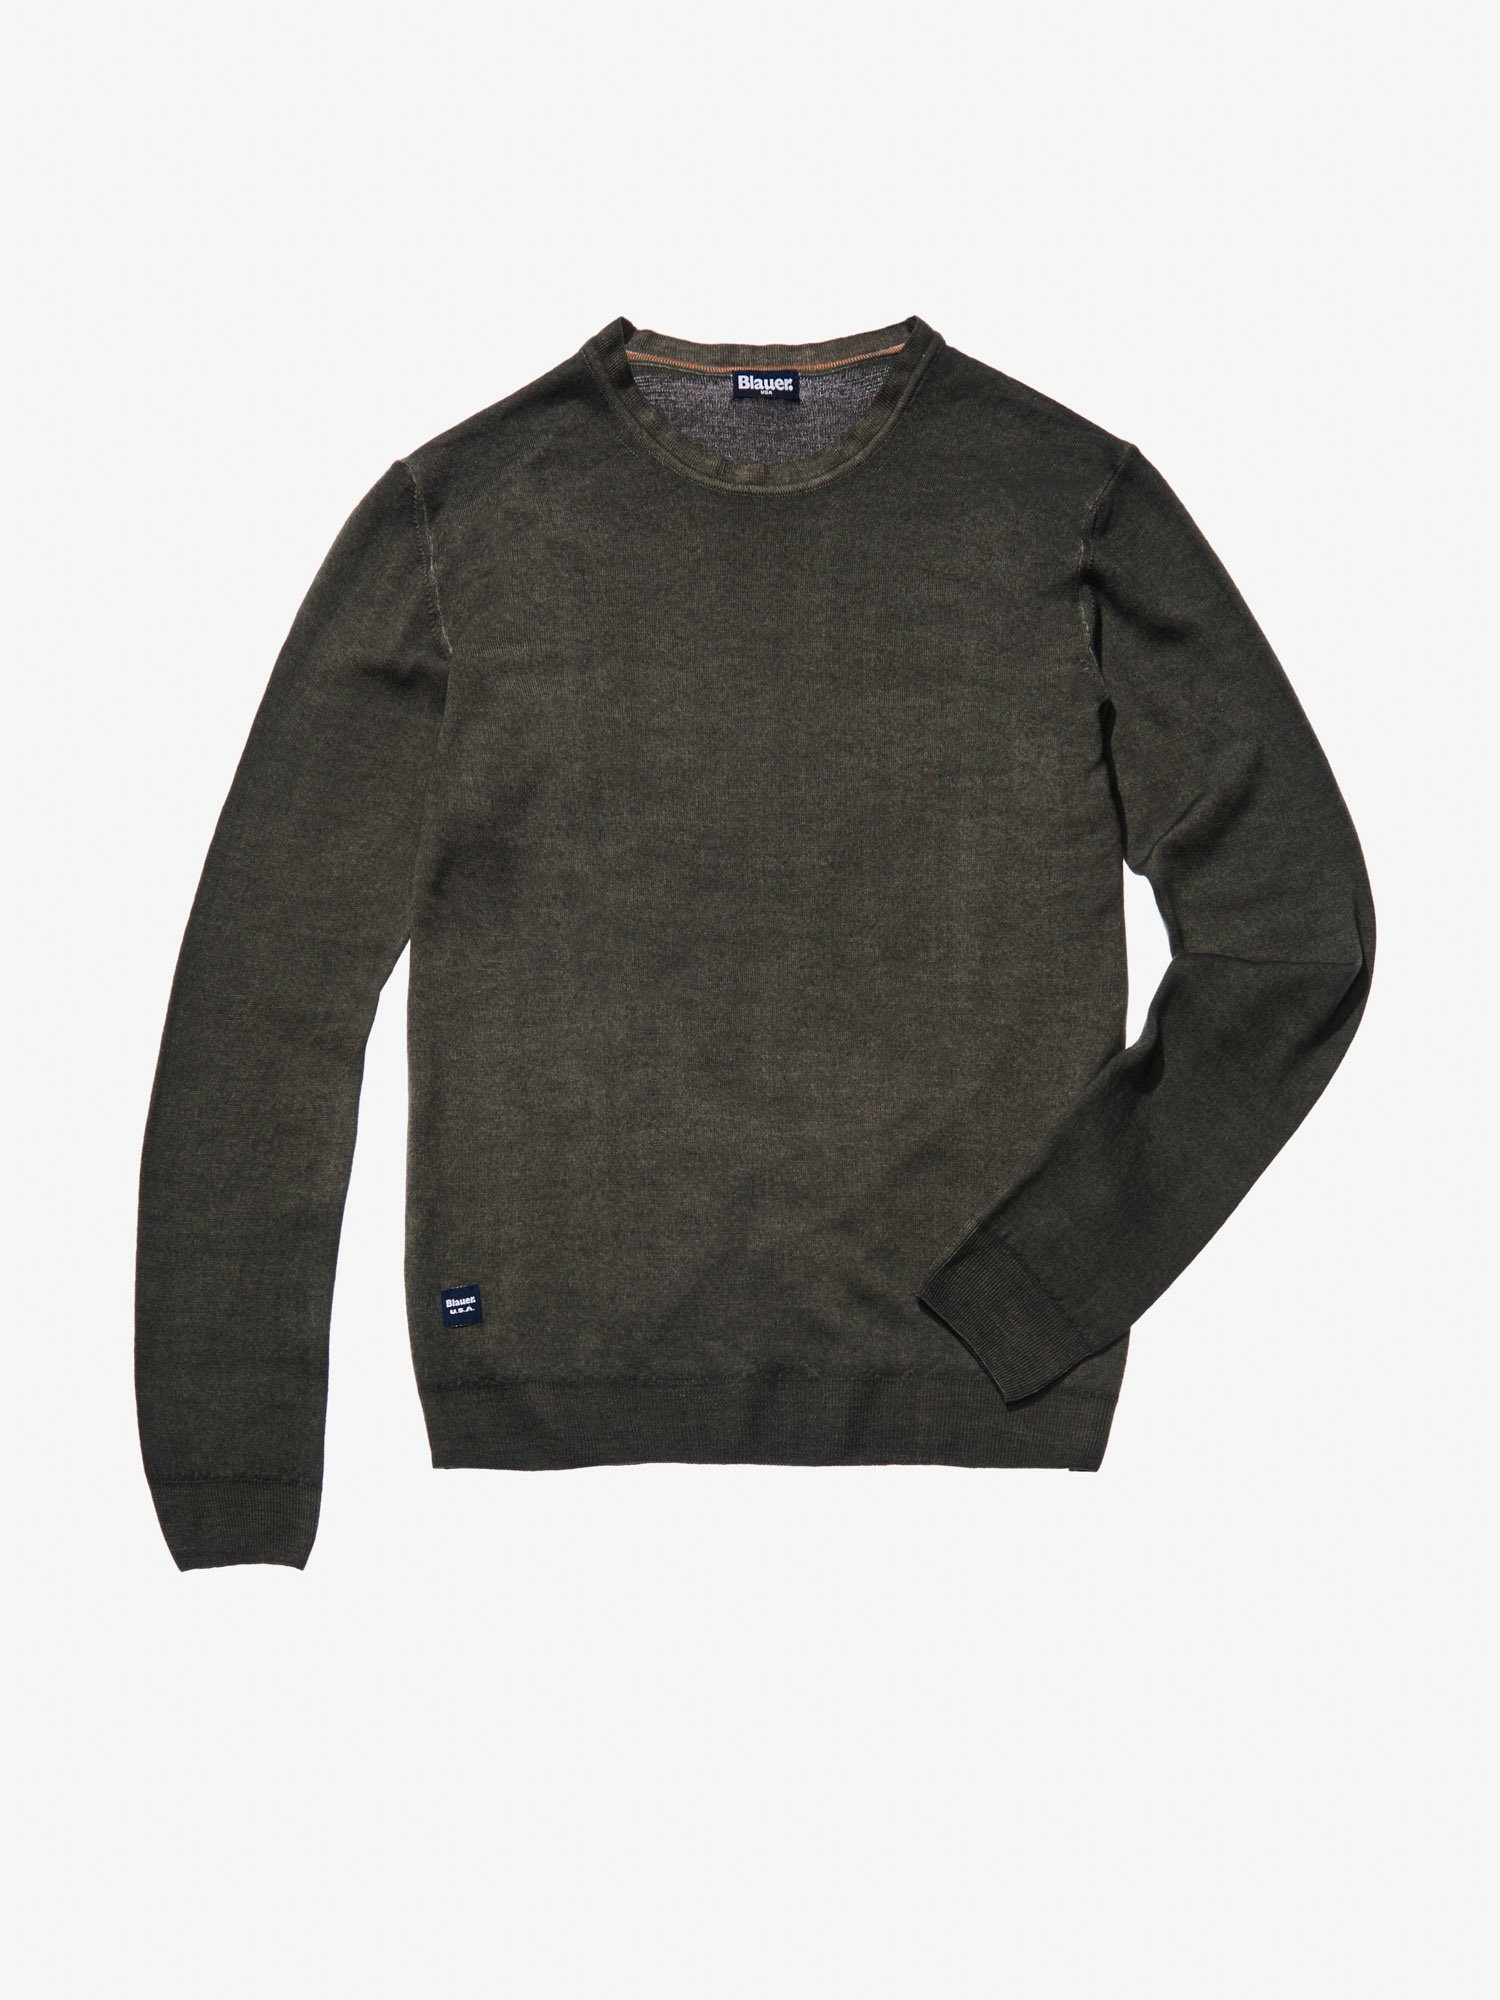 CREW NECK WOOL SWEATER - Blauer